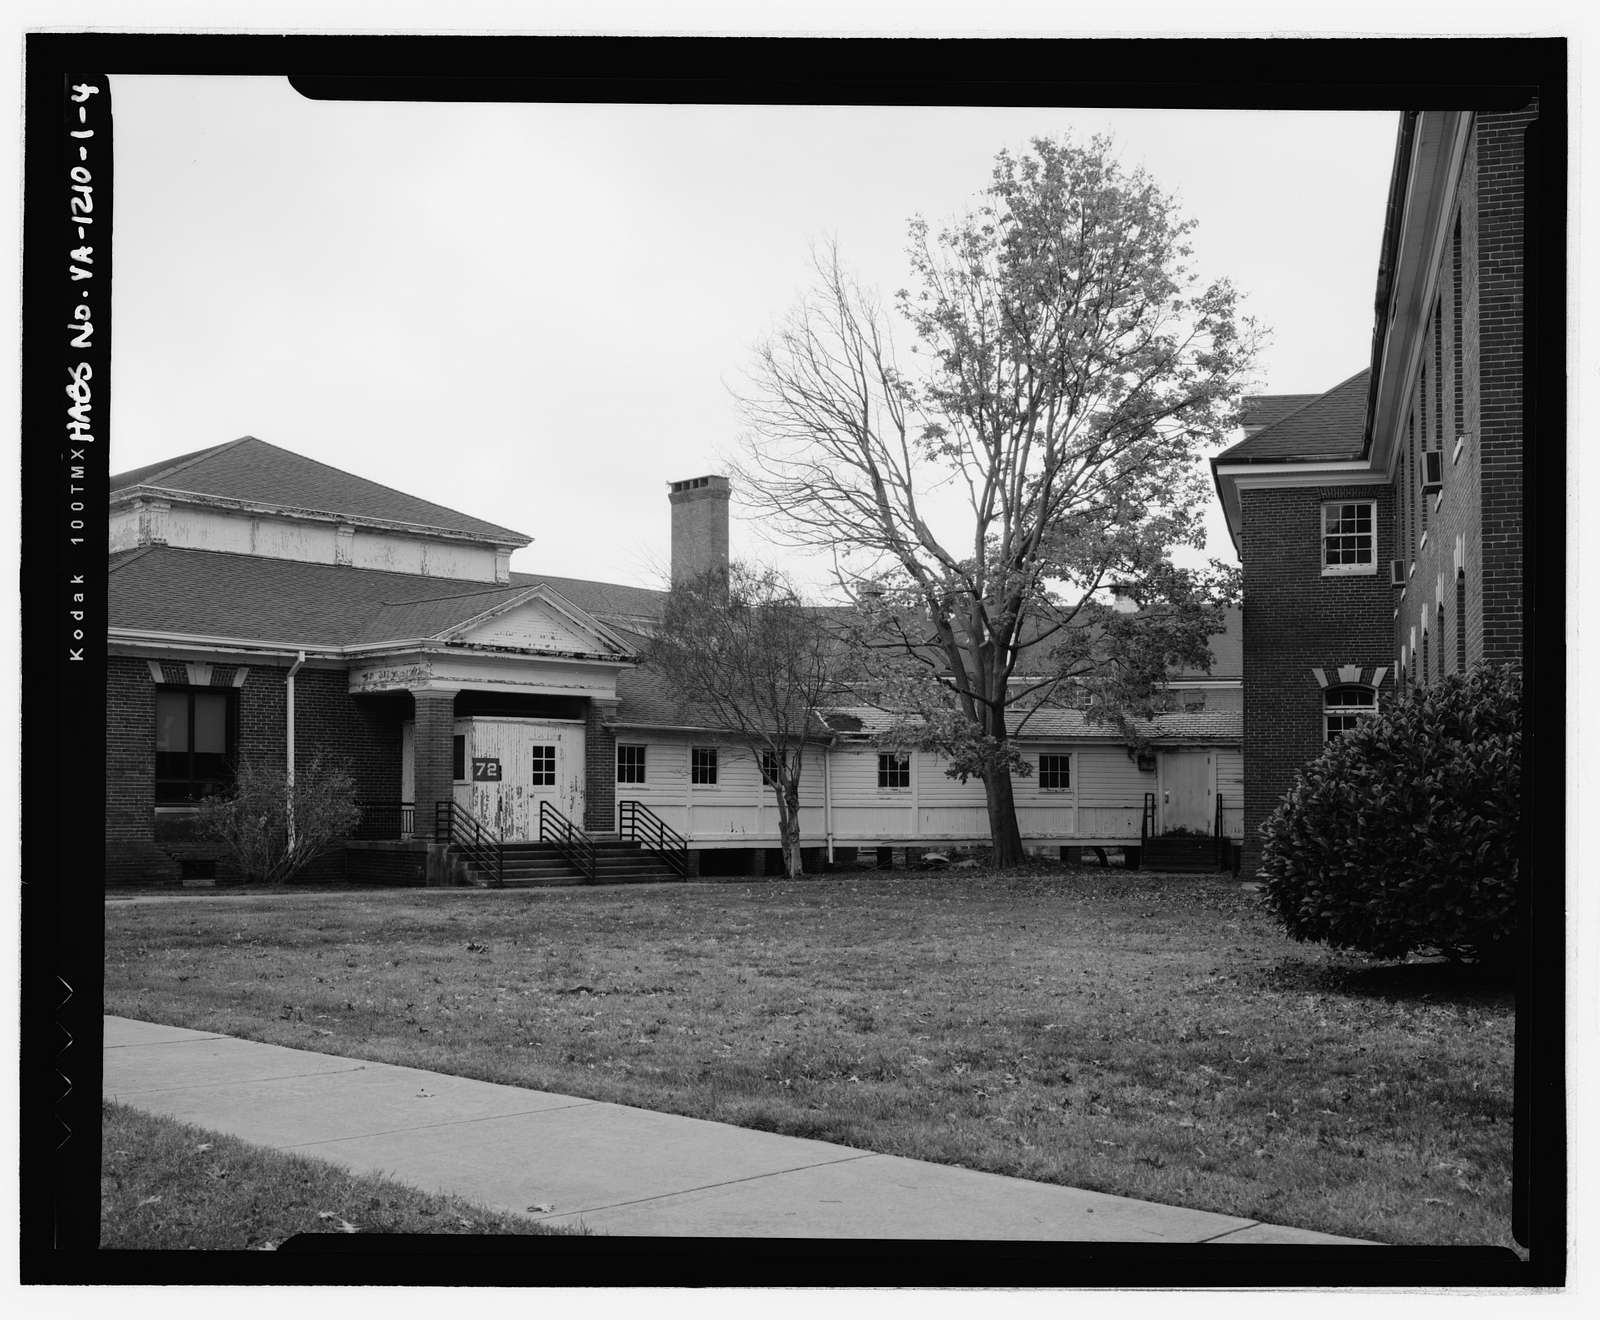 Southern Branch of the National Home for Disabled Volunteer Soldiers, Building 72, Martin Luther King Jr. Boulevard, Hampton, Hampton, VA